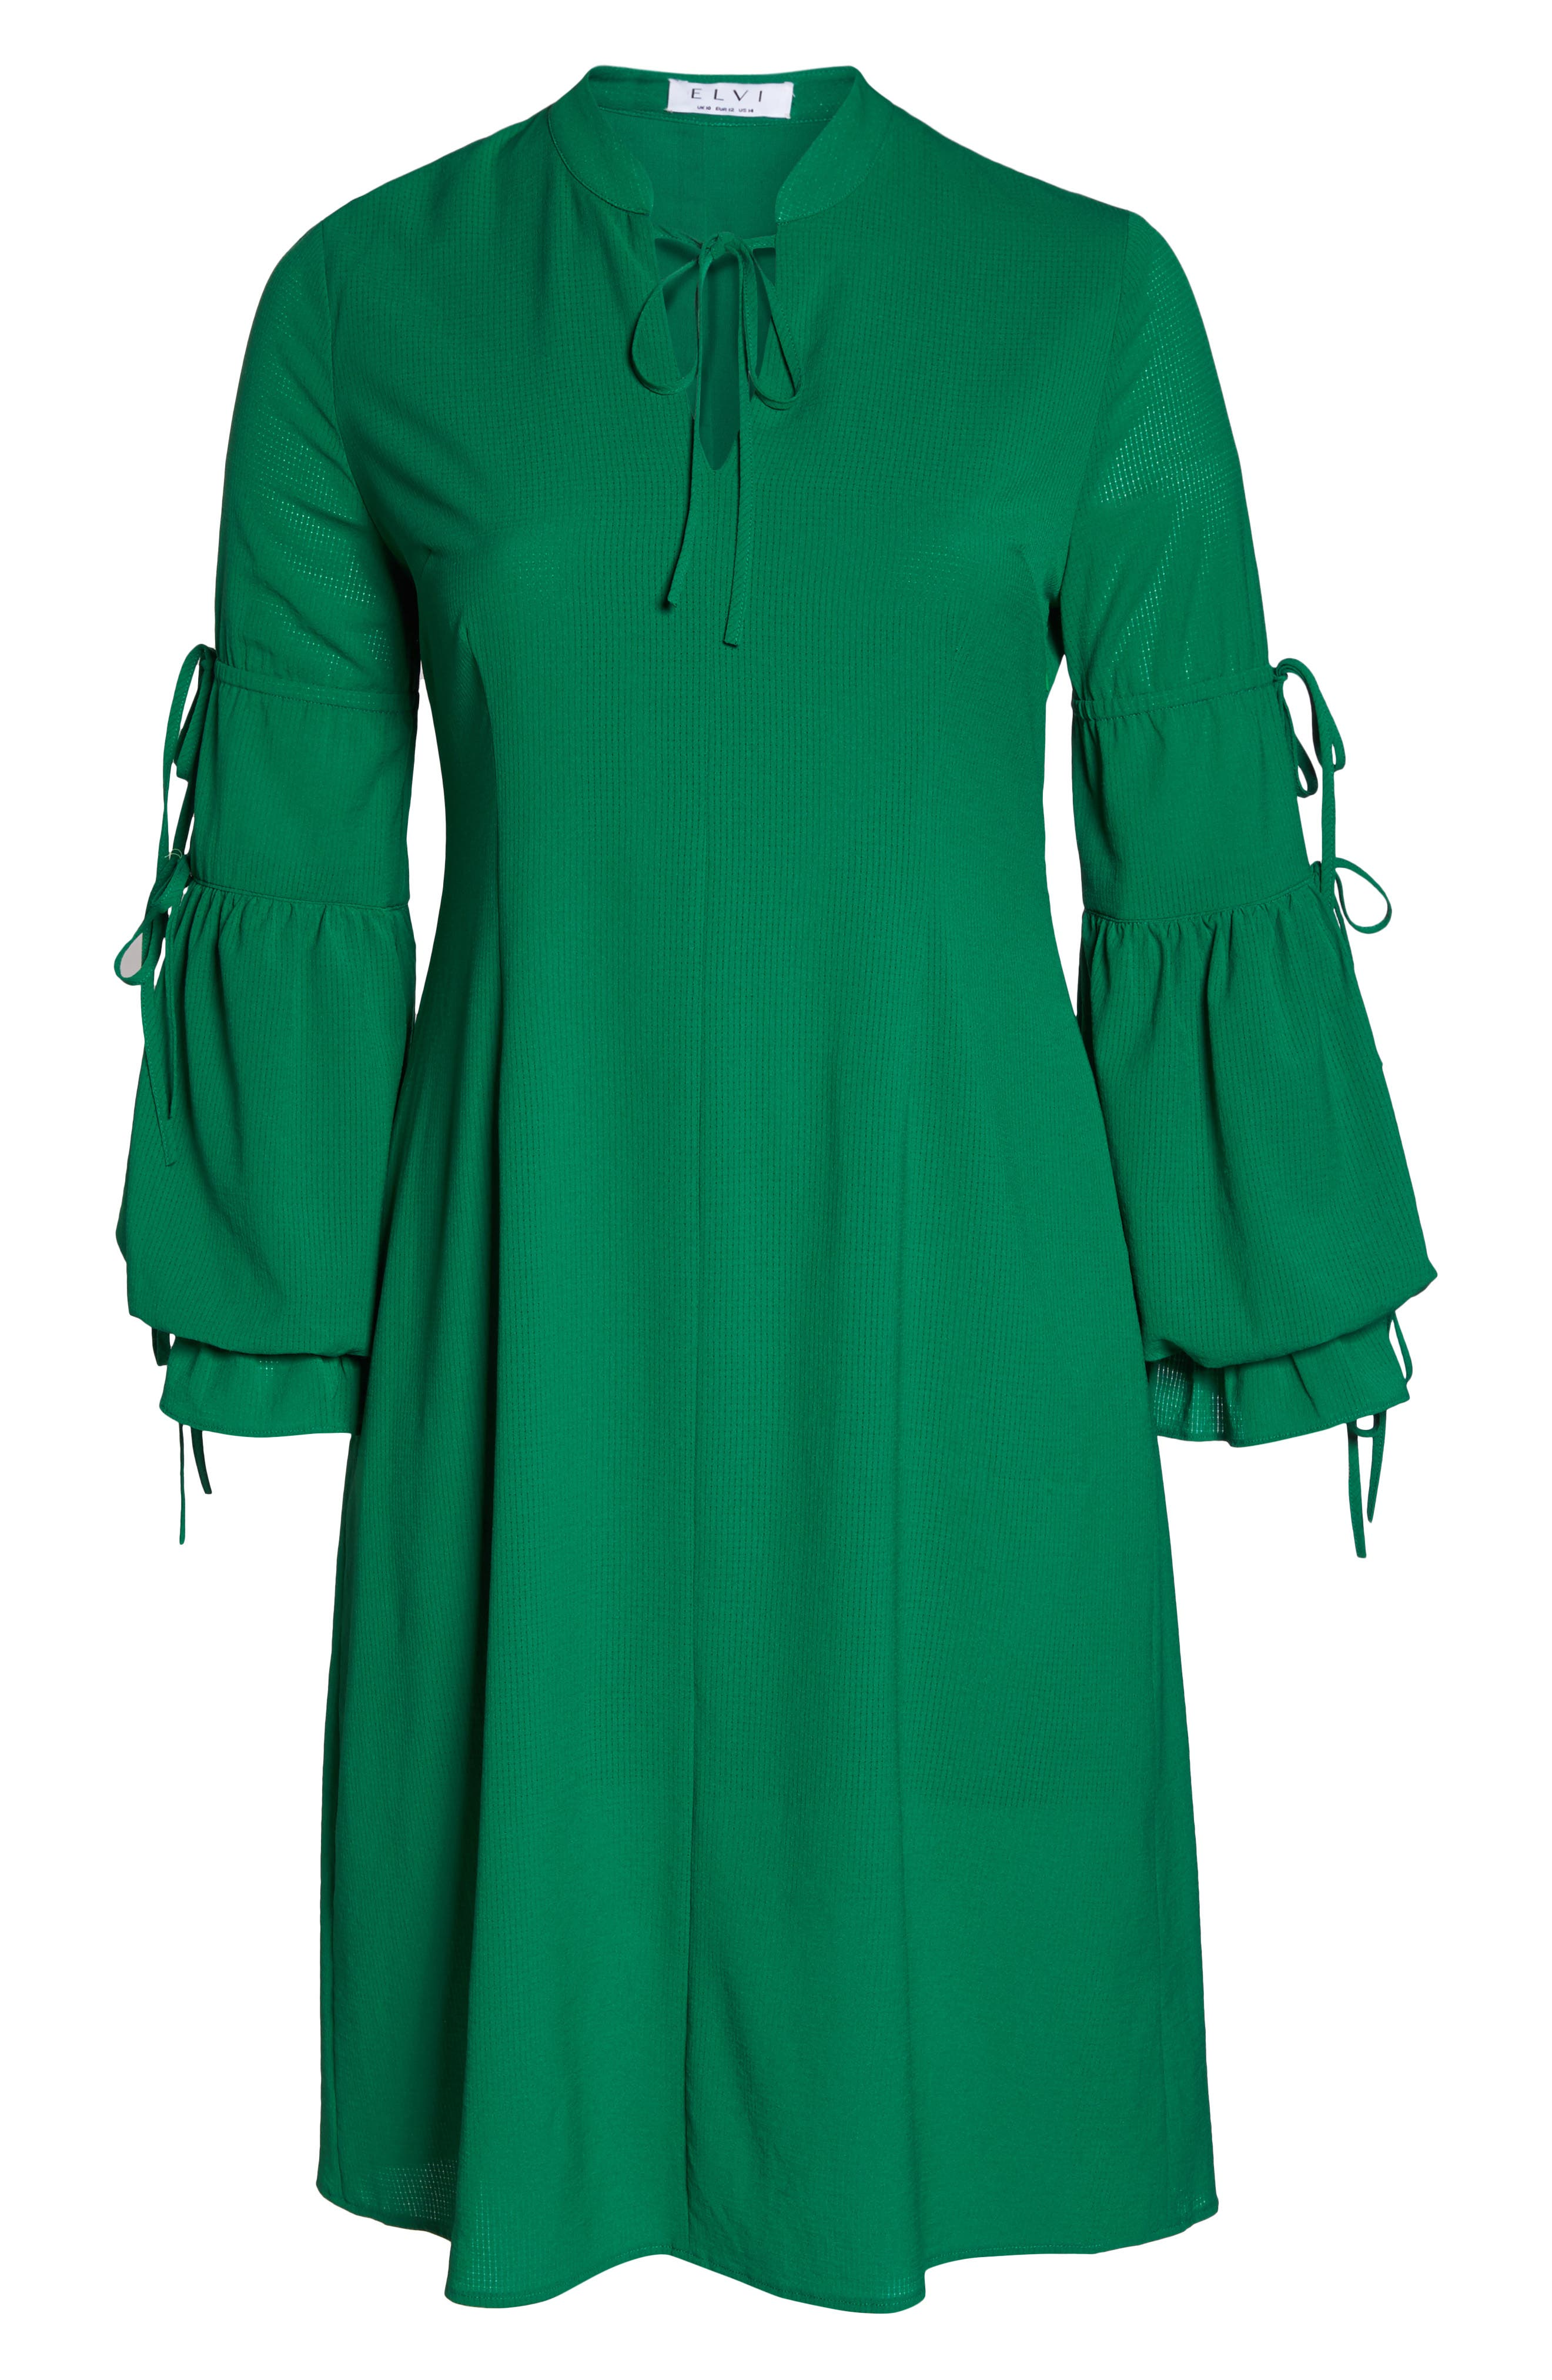 Leiko Antoinette Puff Sleeve Tea Dress,                             Alternate thumbnail 7, color,                             Green